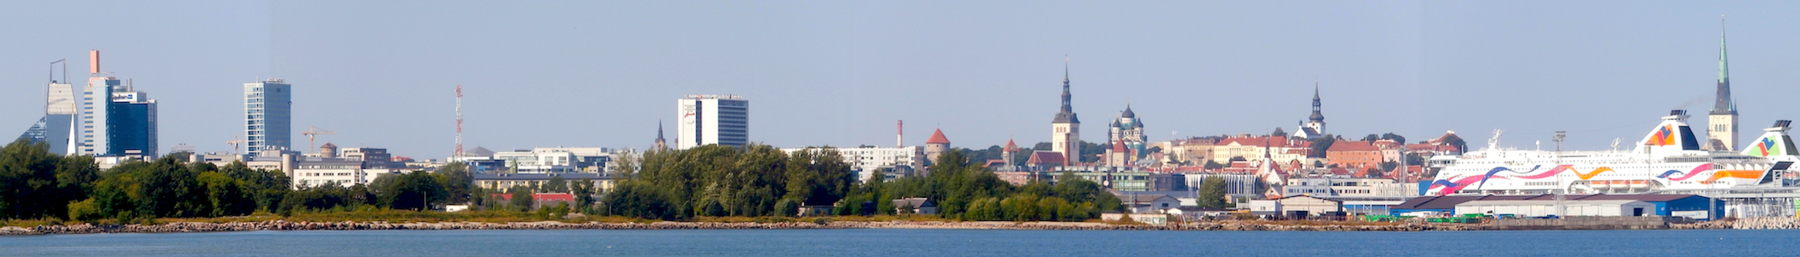 Old City seen from Pirita tee